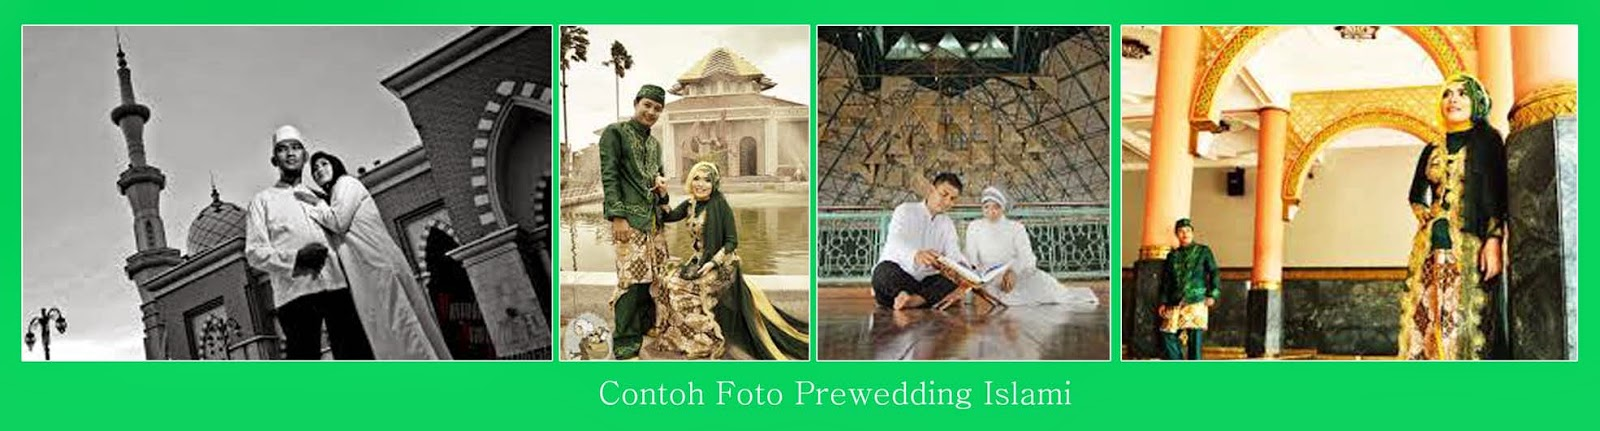 contoh foto pre wedding islami,konsep foto prewedding islami,kumpulan foto pre wedding,contoh foto pre wedding indoor,foto pre wedding murah,foto prewedding islami,foto pre wedding Islami,